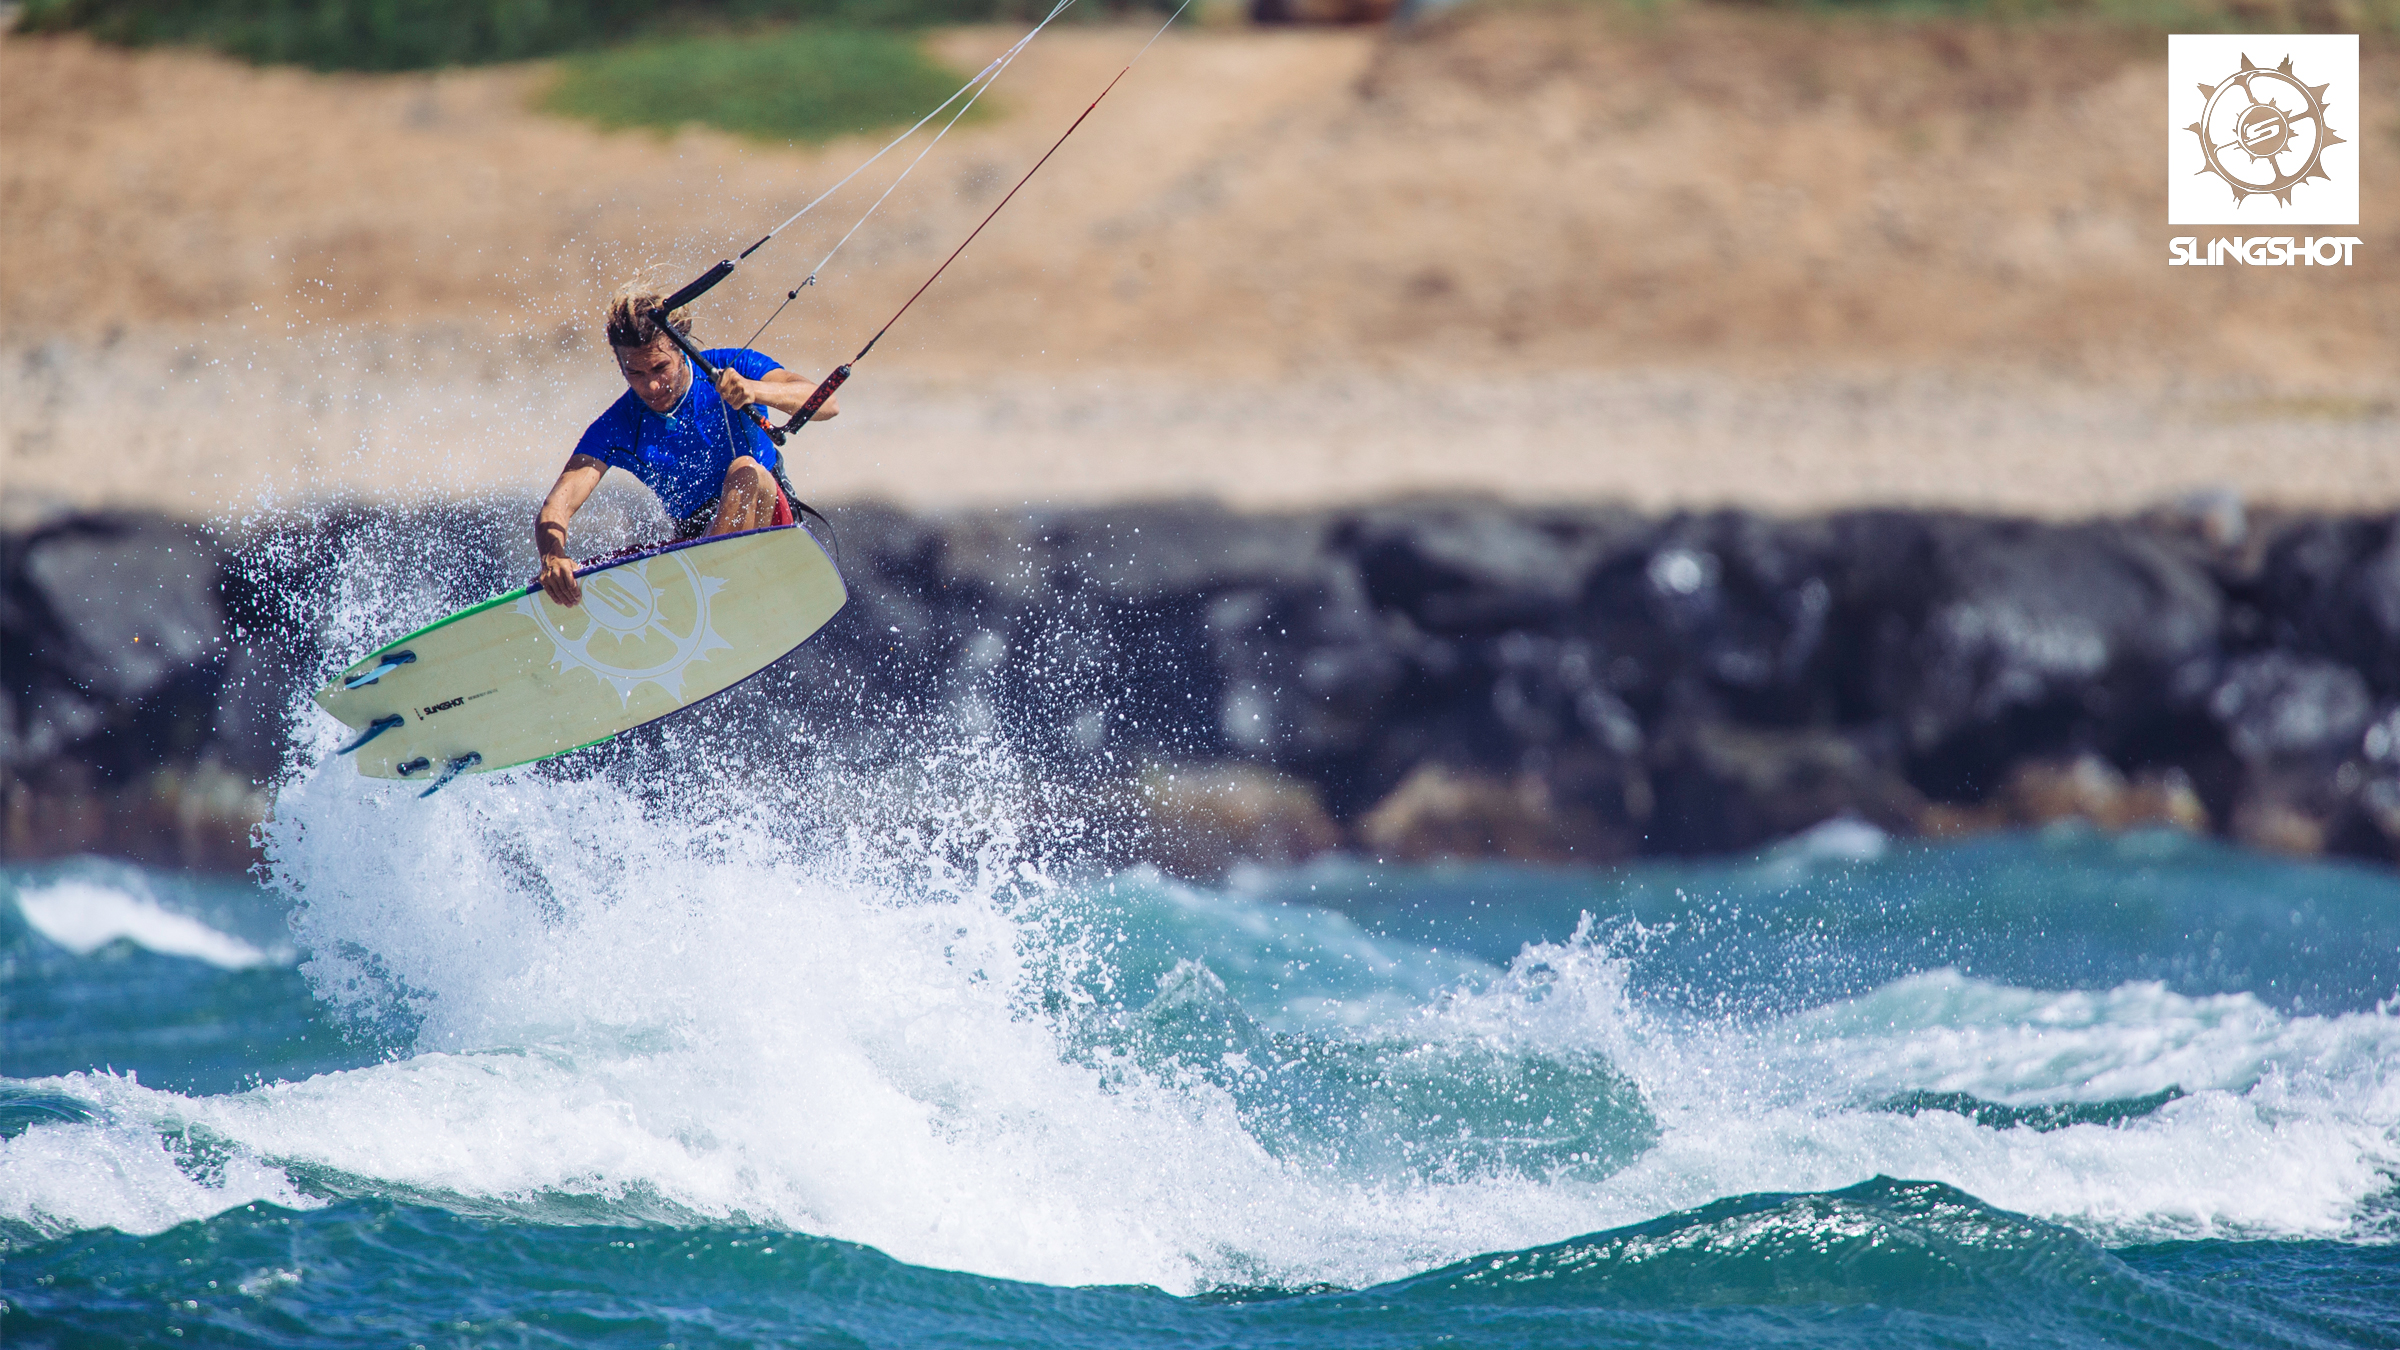 kitesurf wallpaper image - Patrick Rebstock on the 2015 Slingshot Angry Swallow kiteboard - in resolution: High Definition - HD 16:9 2400 X 1350